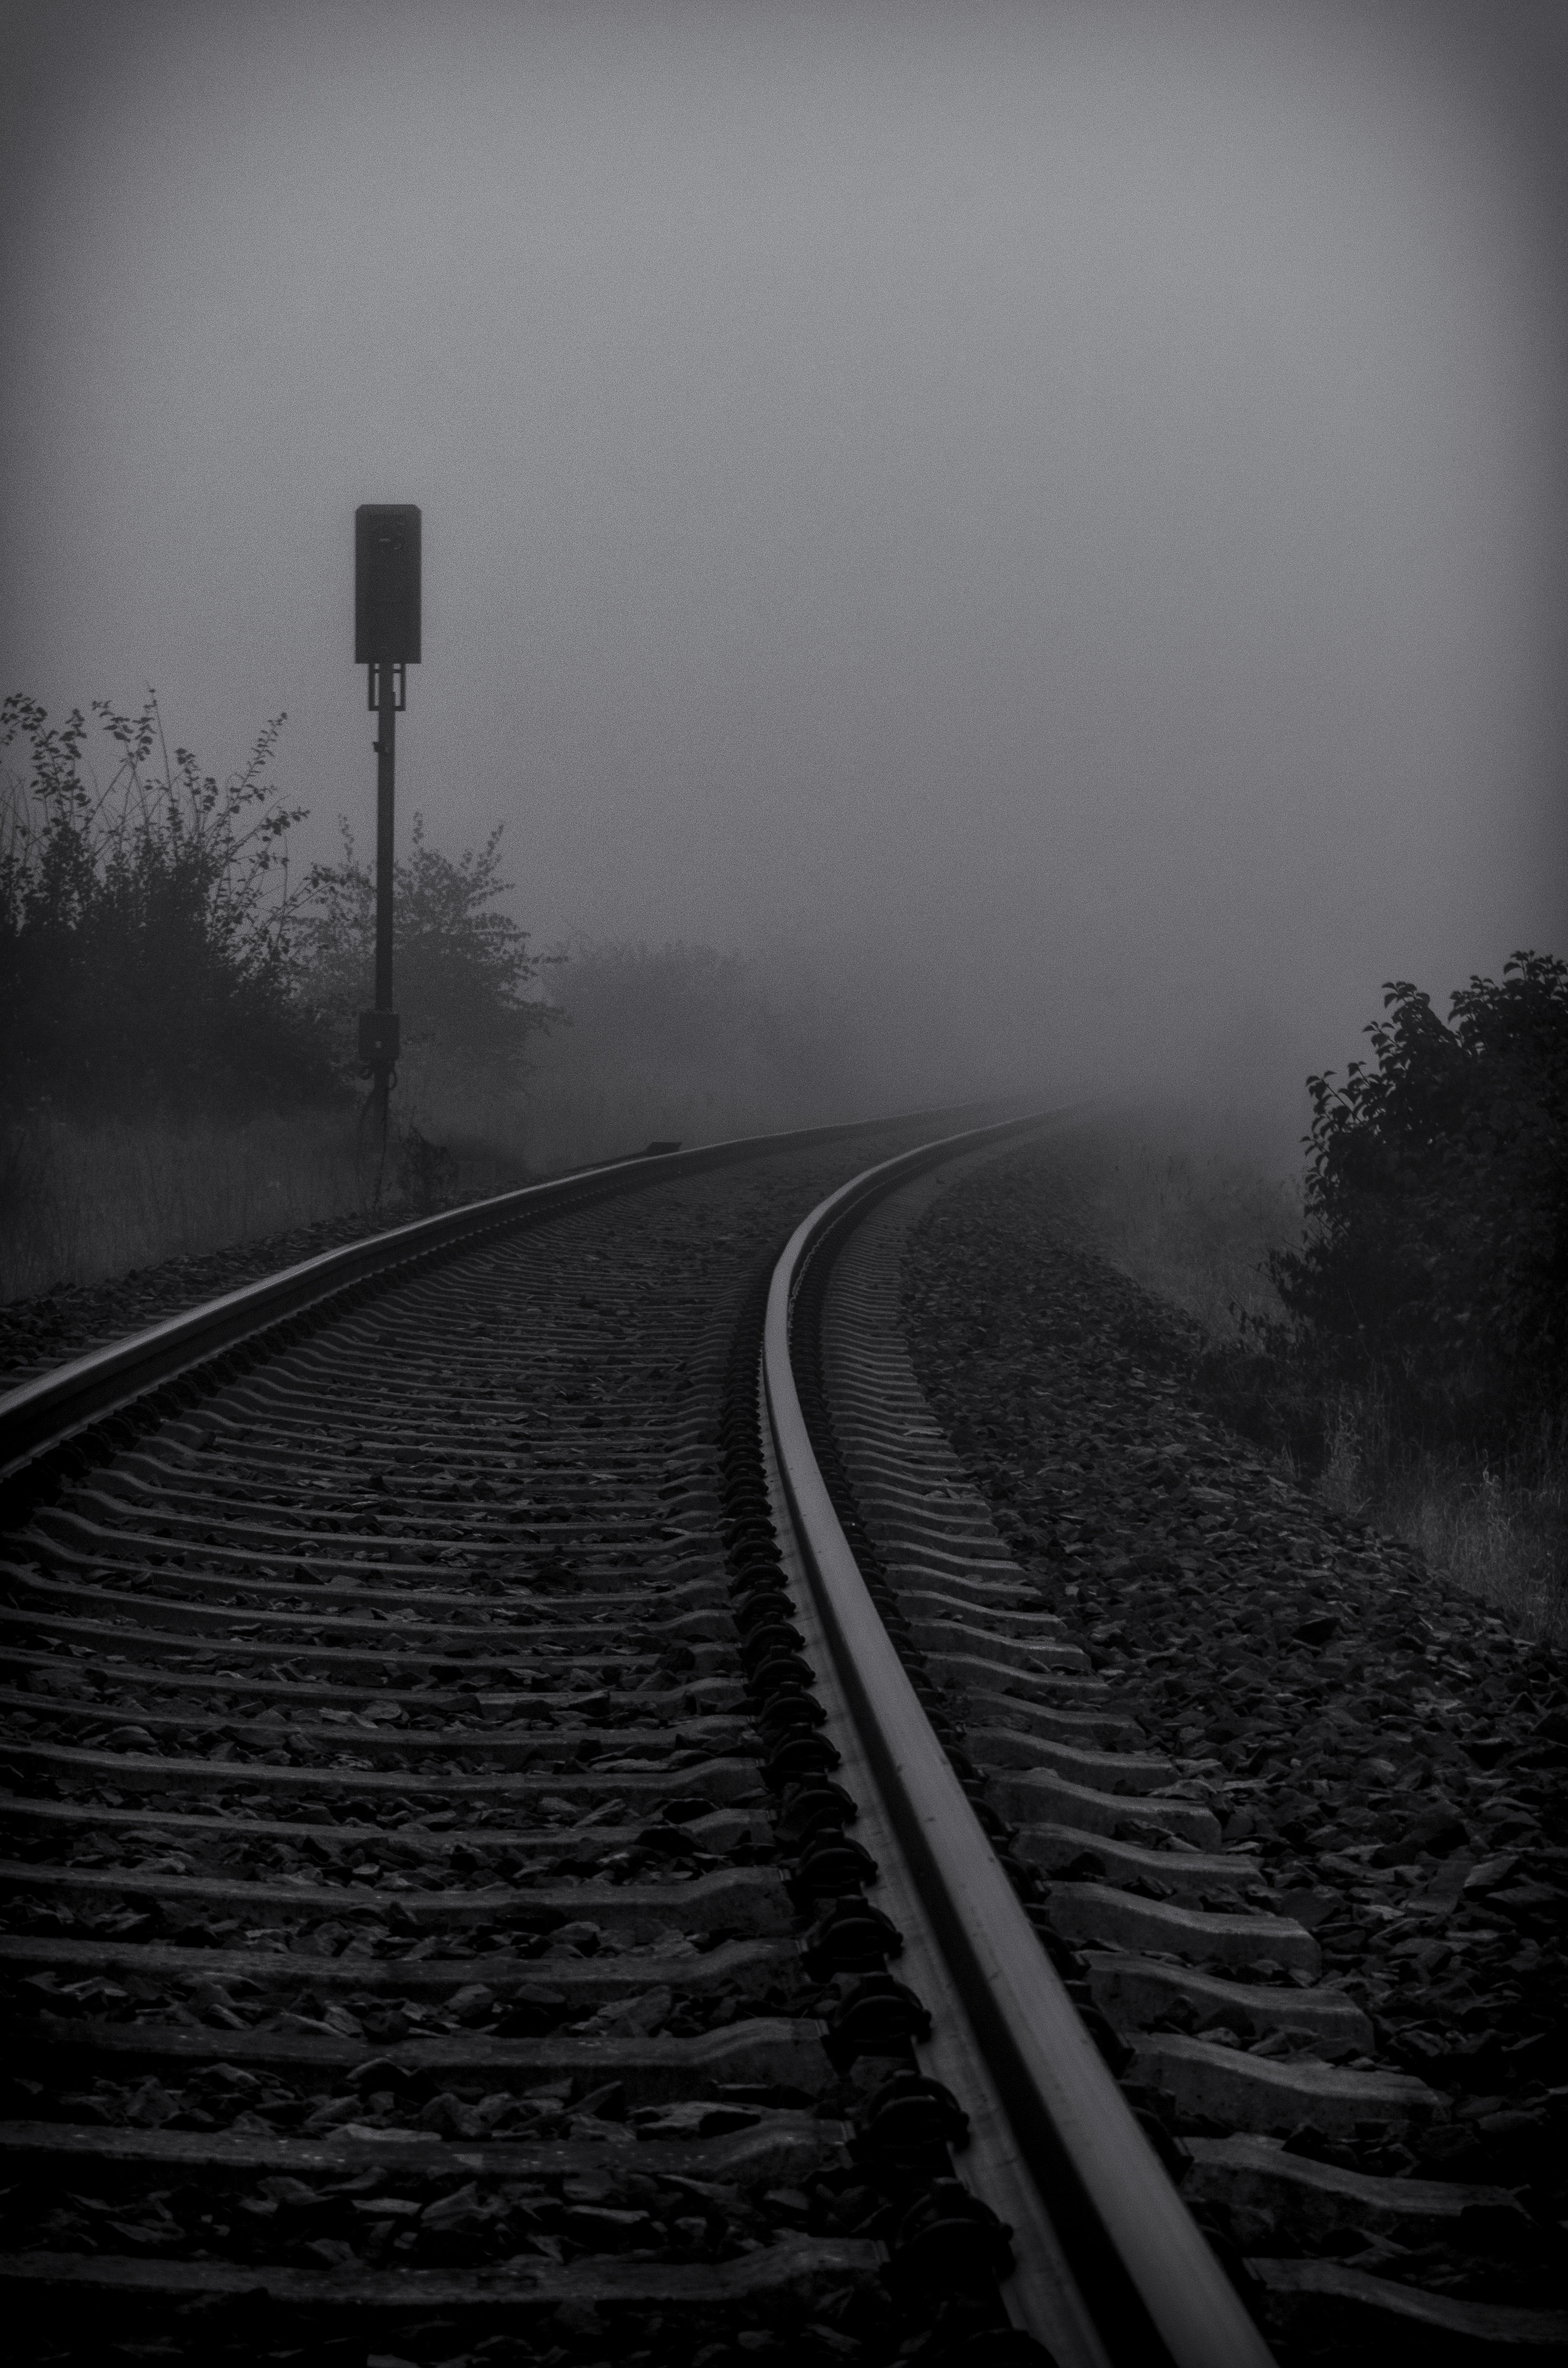 Traveling through the mist